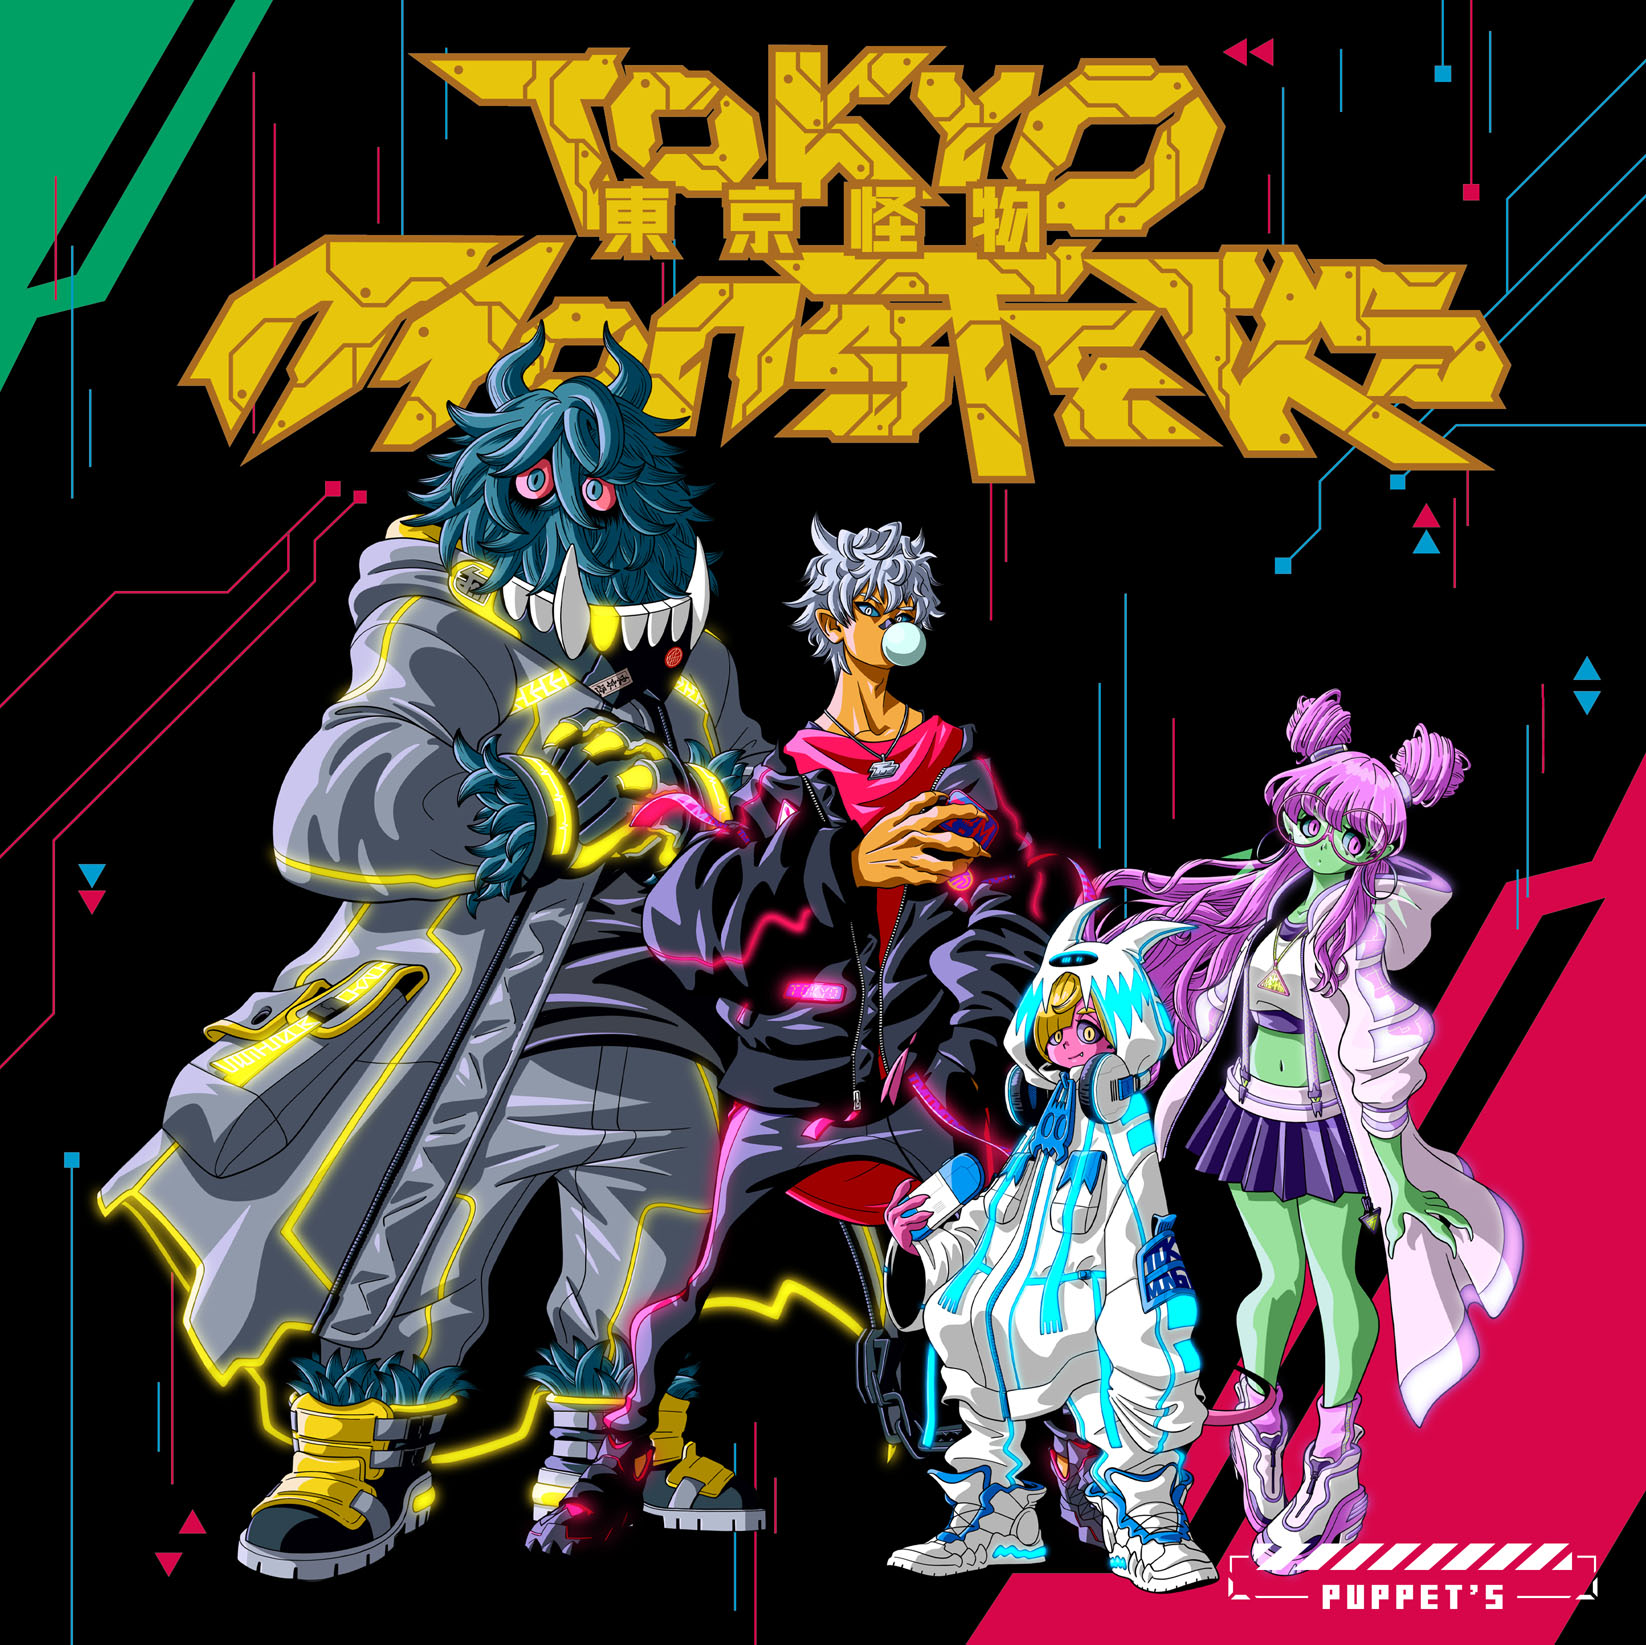 TOKYO MONSTERS - PUPPET'S